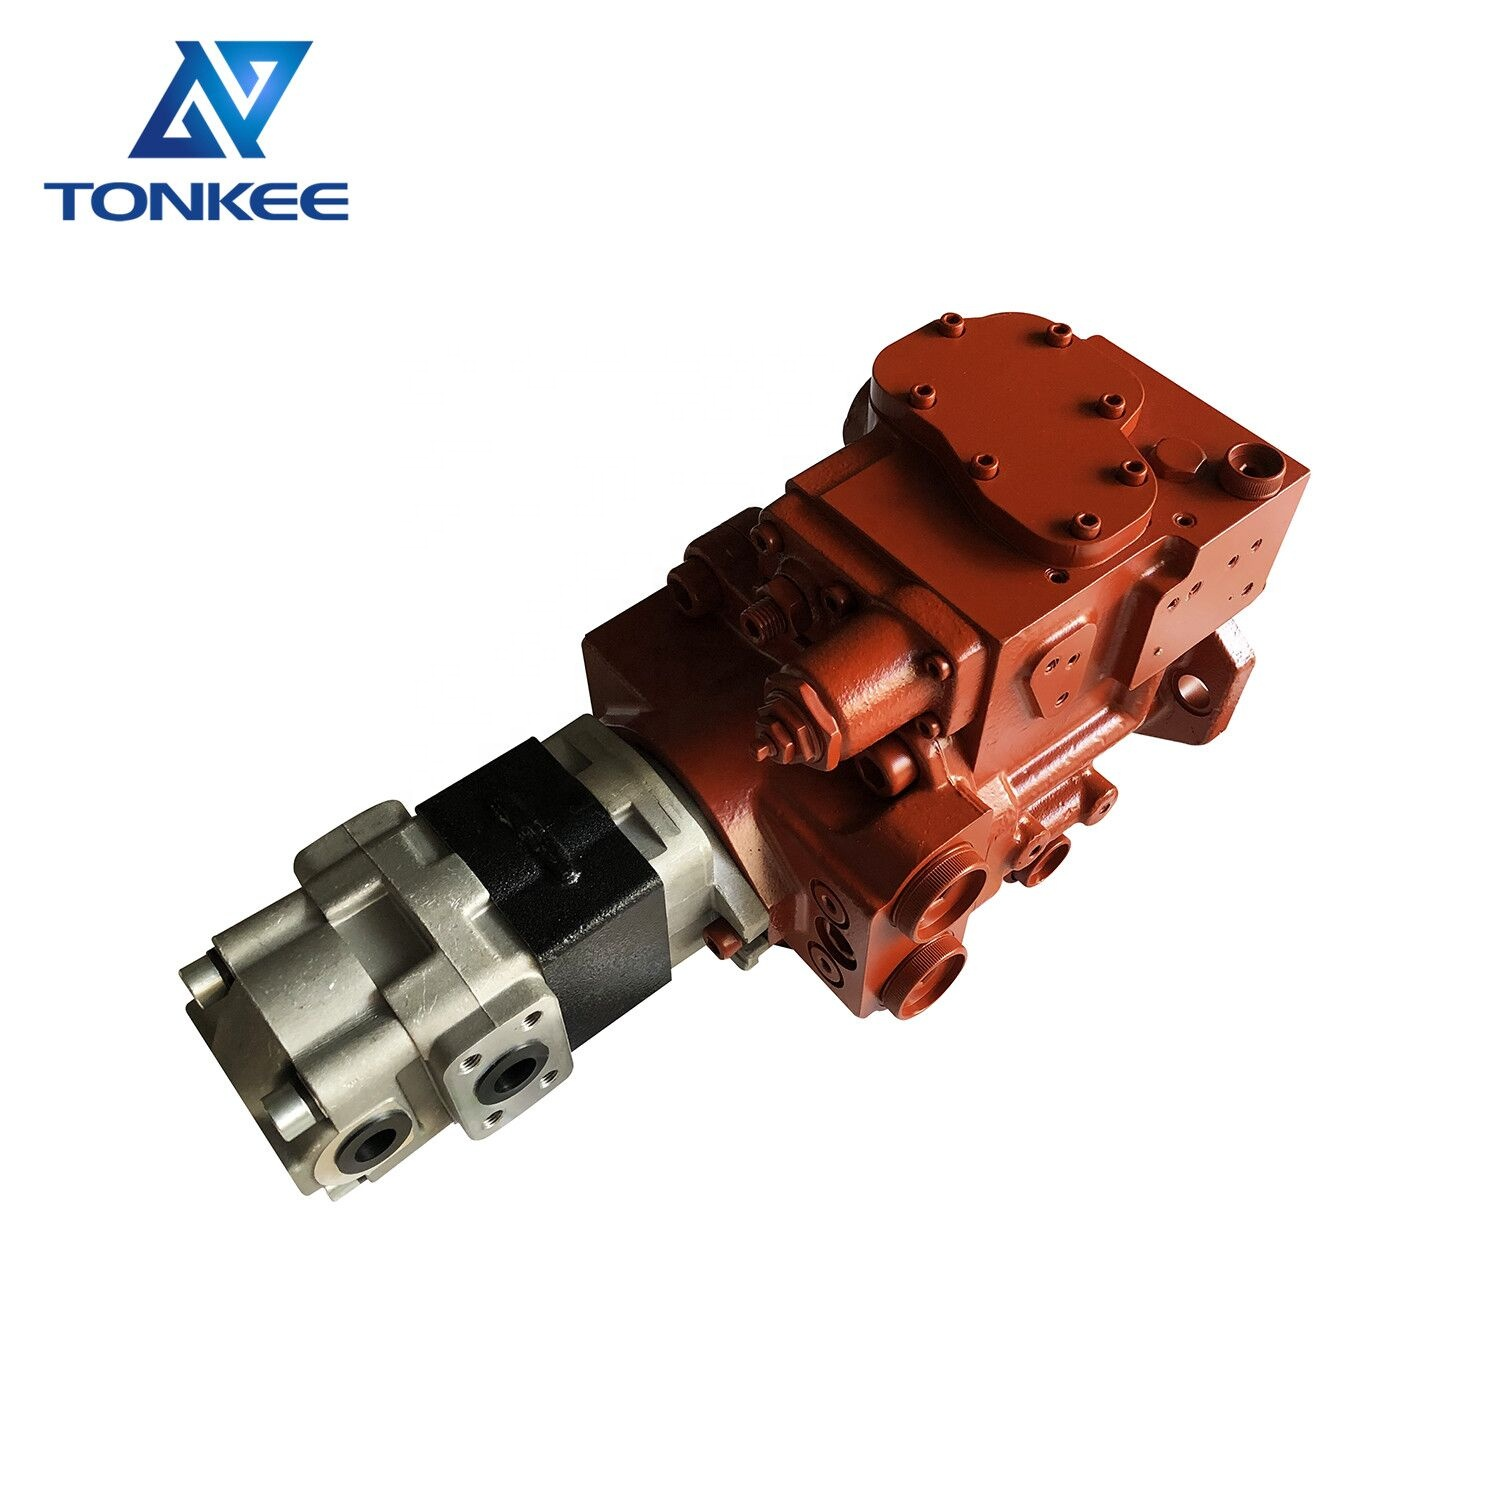 100% fit TB175 TB180 excavator main pump K3SP36C K3SP36C-13BR-9002 hydraulic piston pump suitable for TAKEUCHI (6).jpg